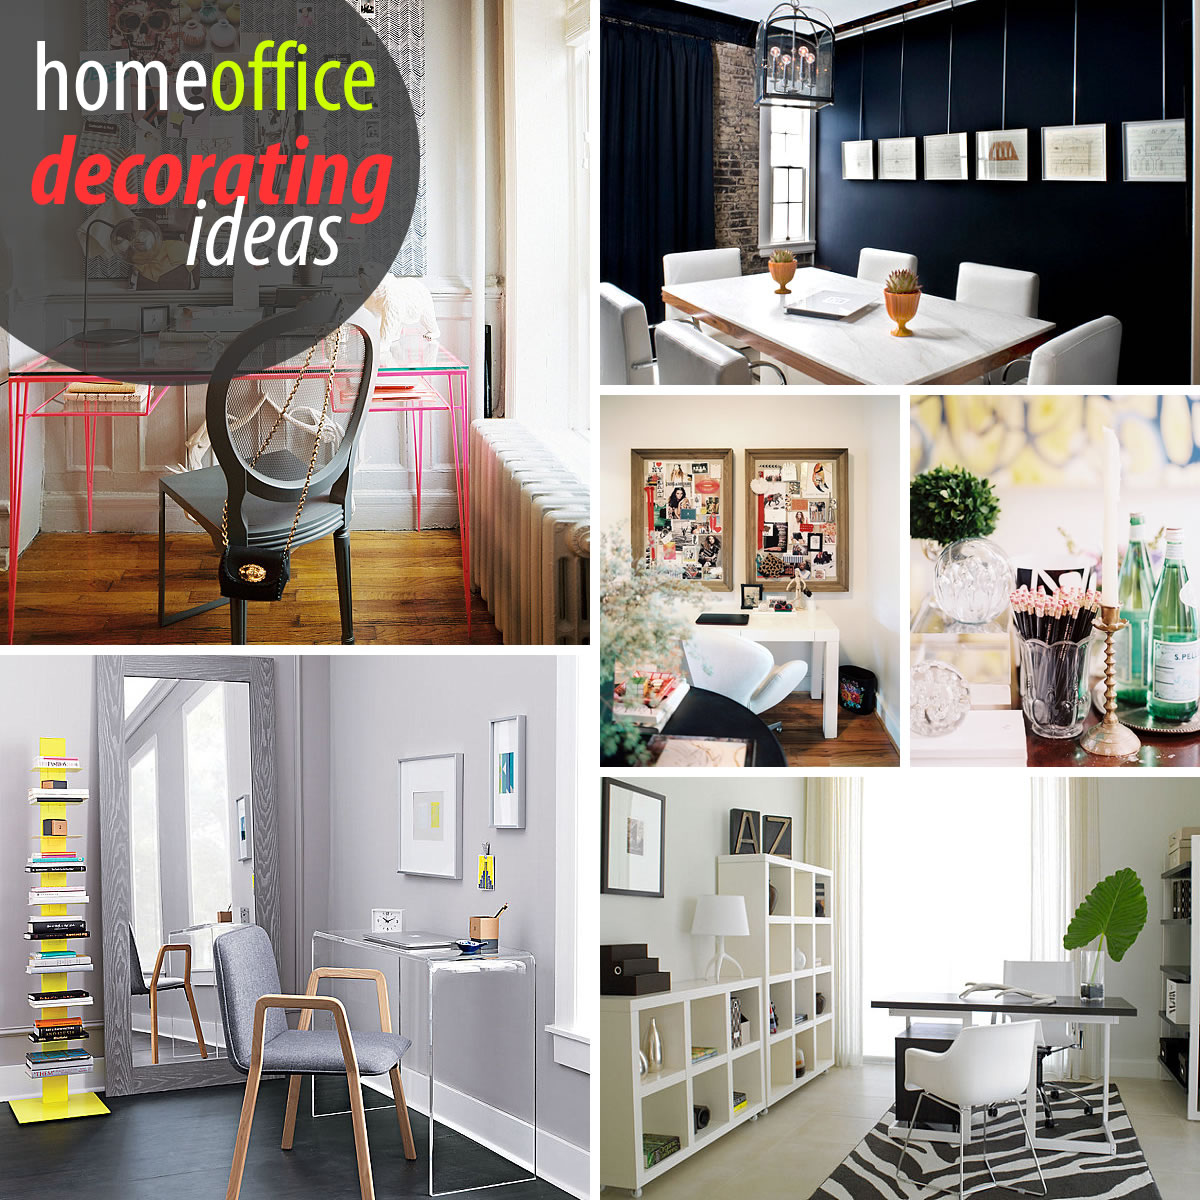 Creative home office decorating ideas for Small work office decorating ideas